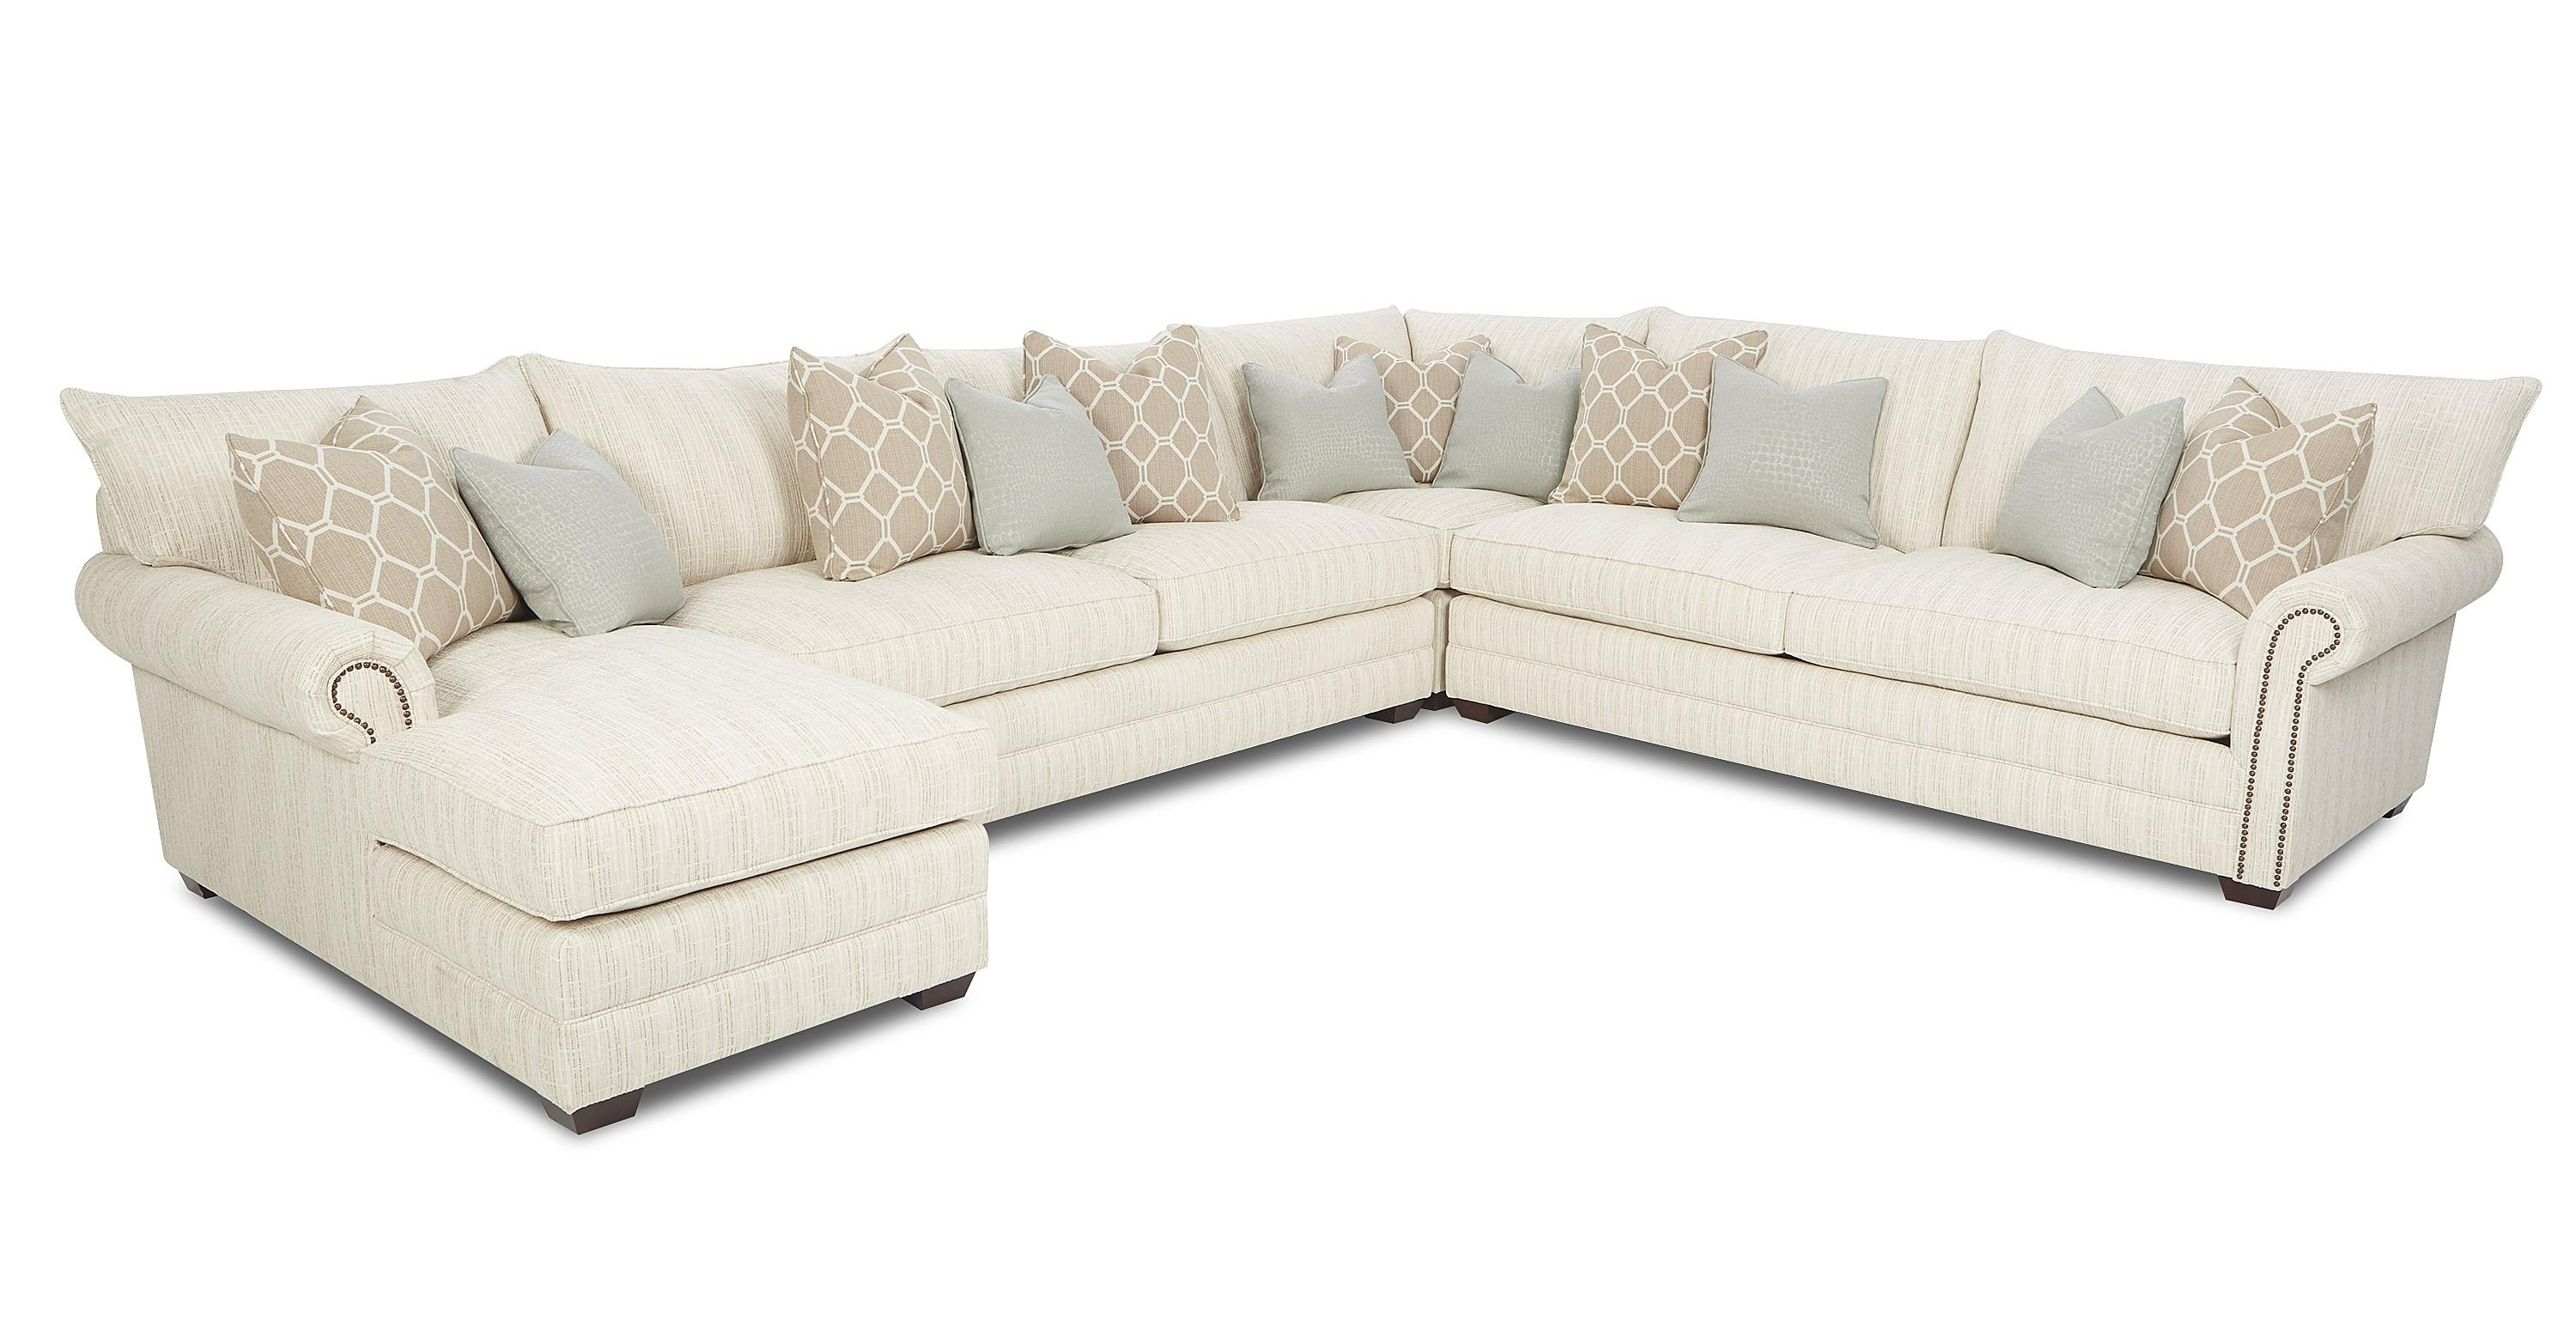 Traditional Sectional Sofa With Nailhead Trim And Chaise Lounge For Most Recent Sectional Sofas With Nailheads (View 3 of 15)